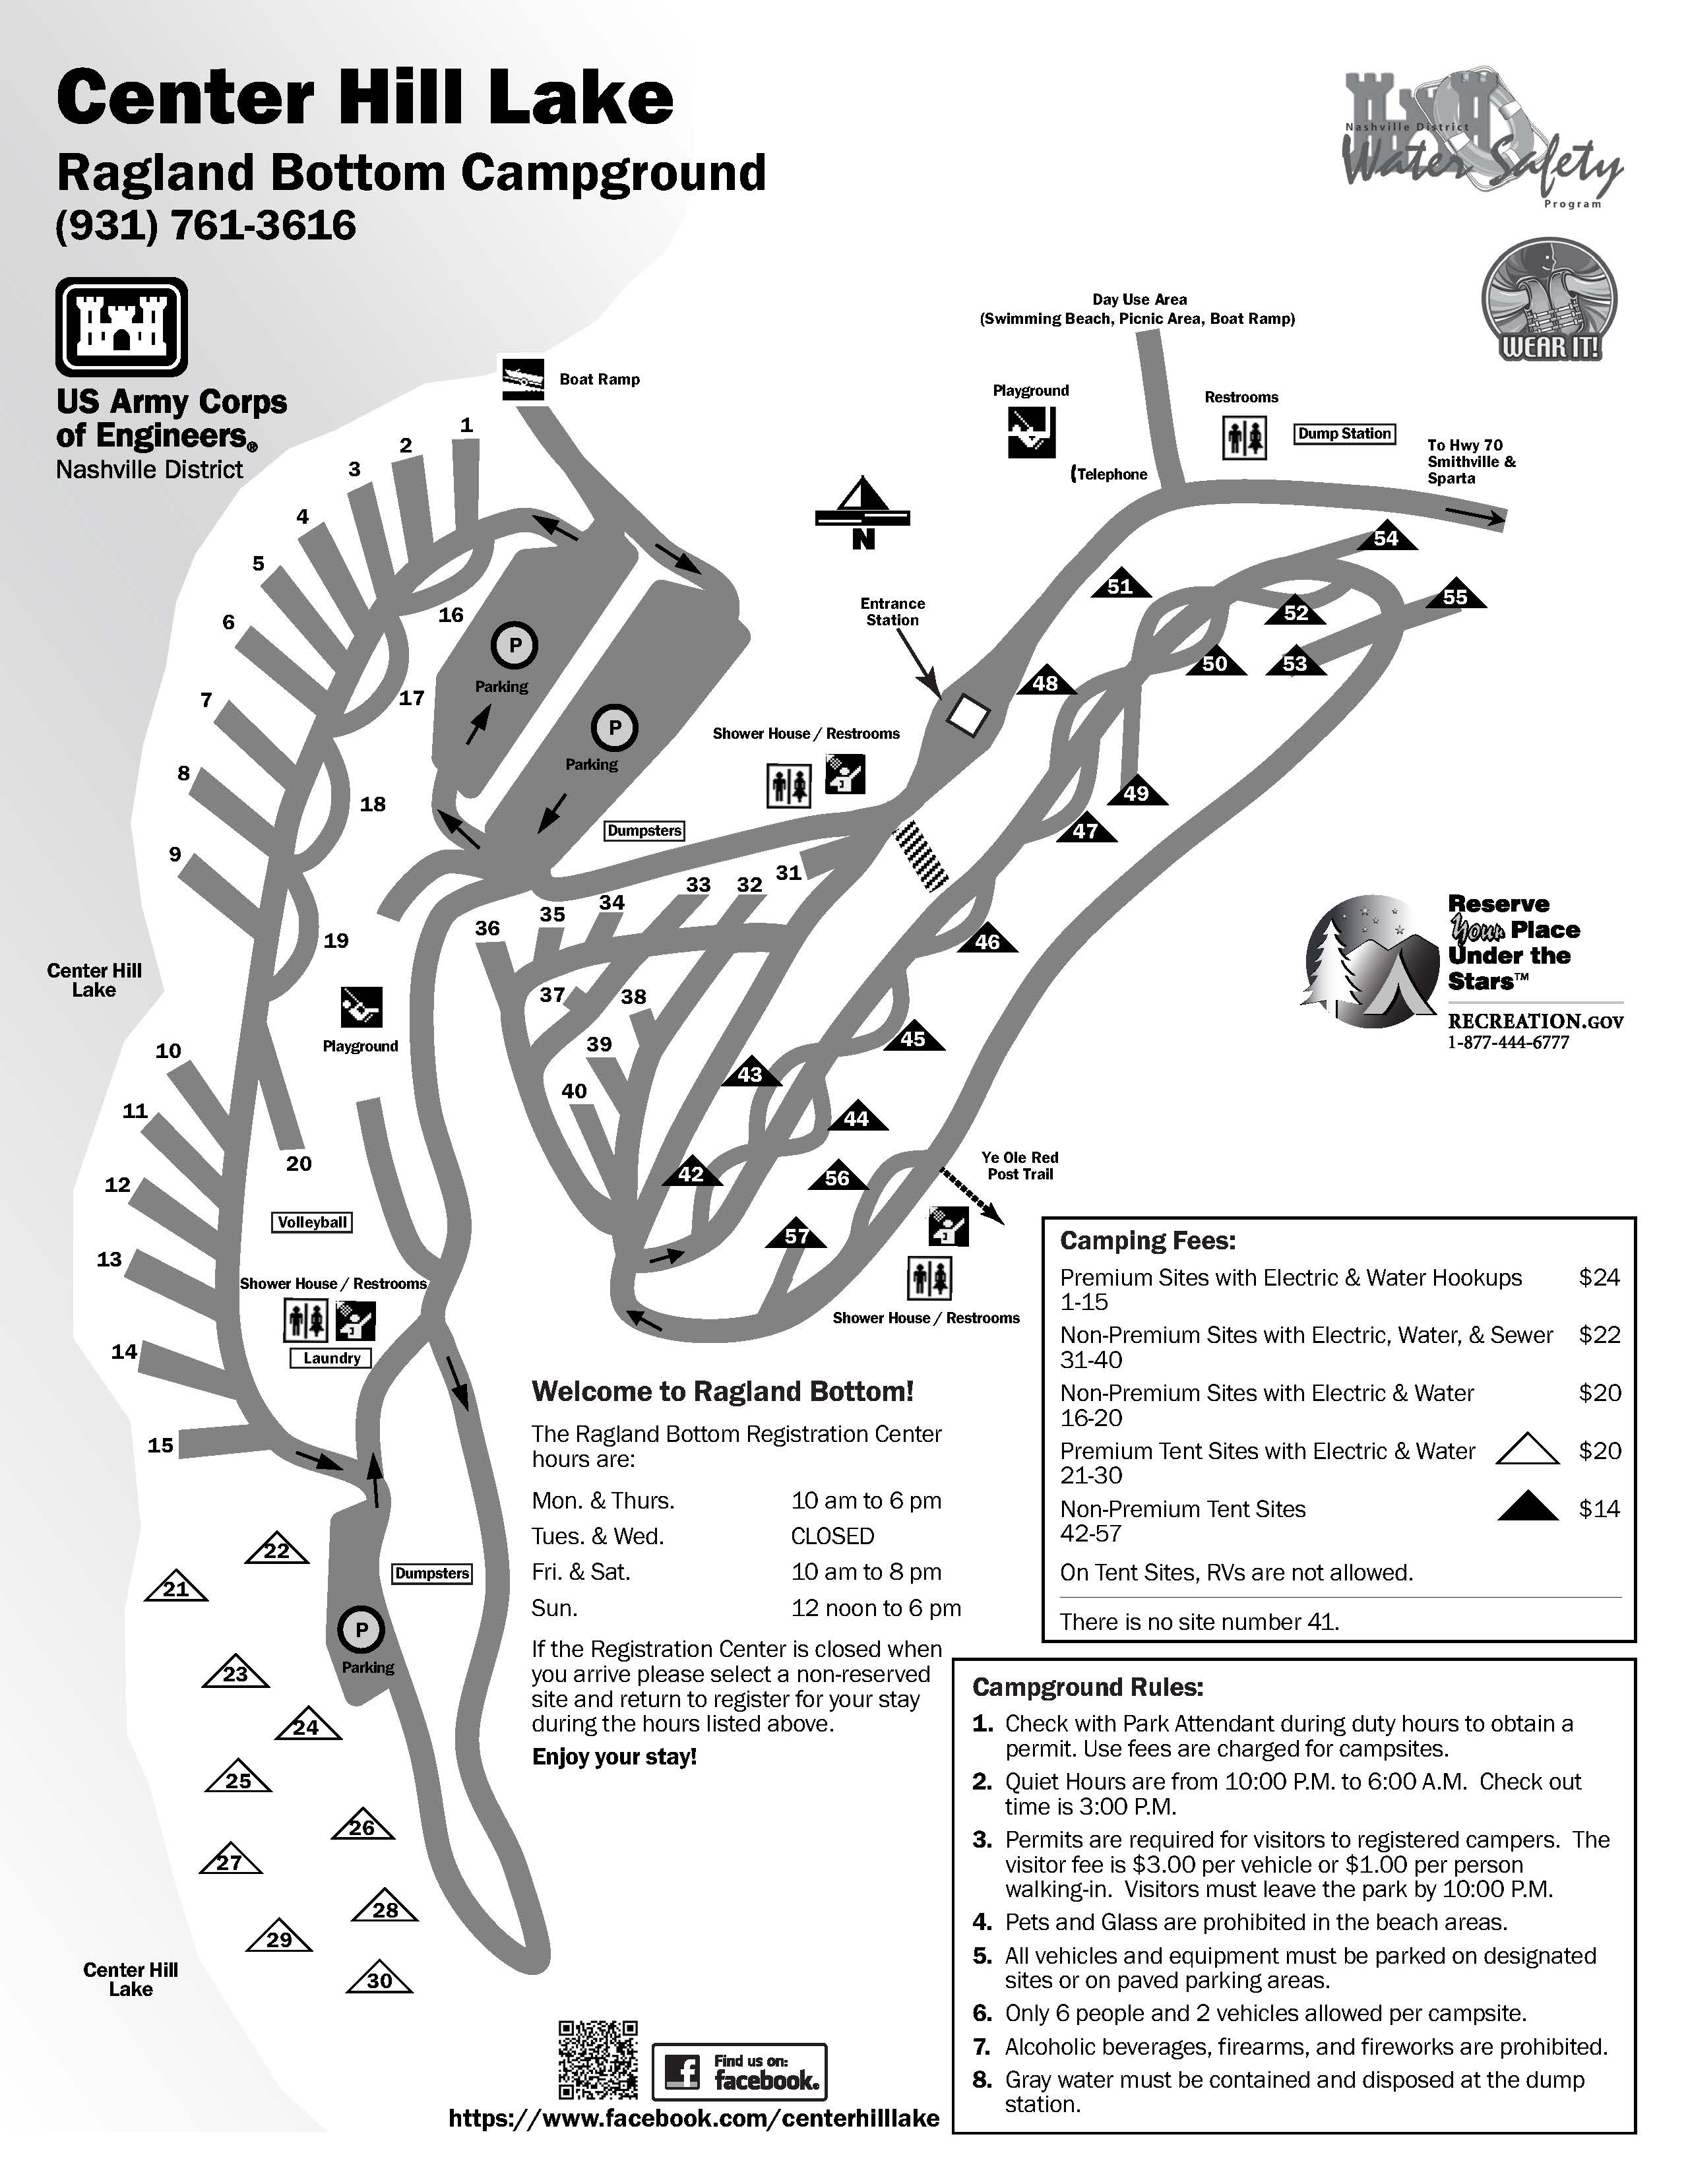 Ragland Bottom Campground Map at Center Hill Lake